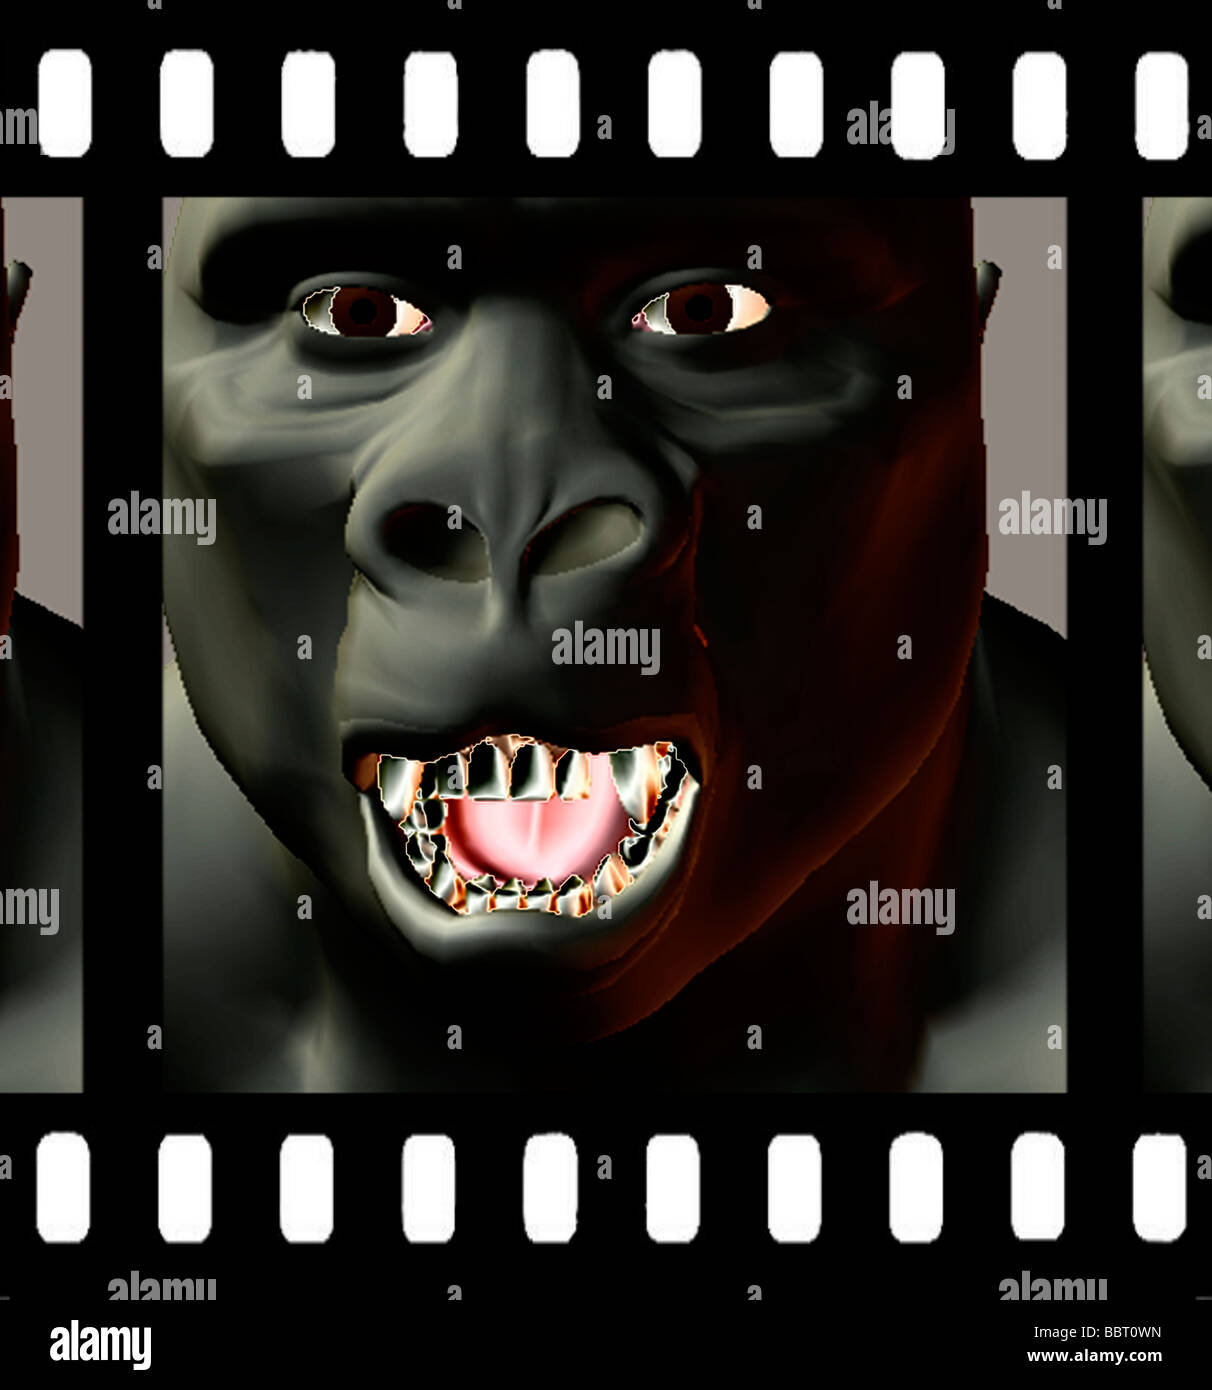 3D computer generated illustration of ape on movie film frame - Stock Image